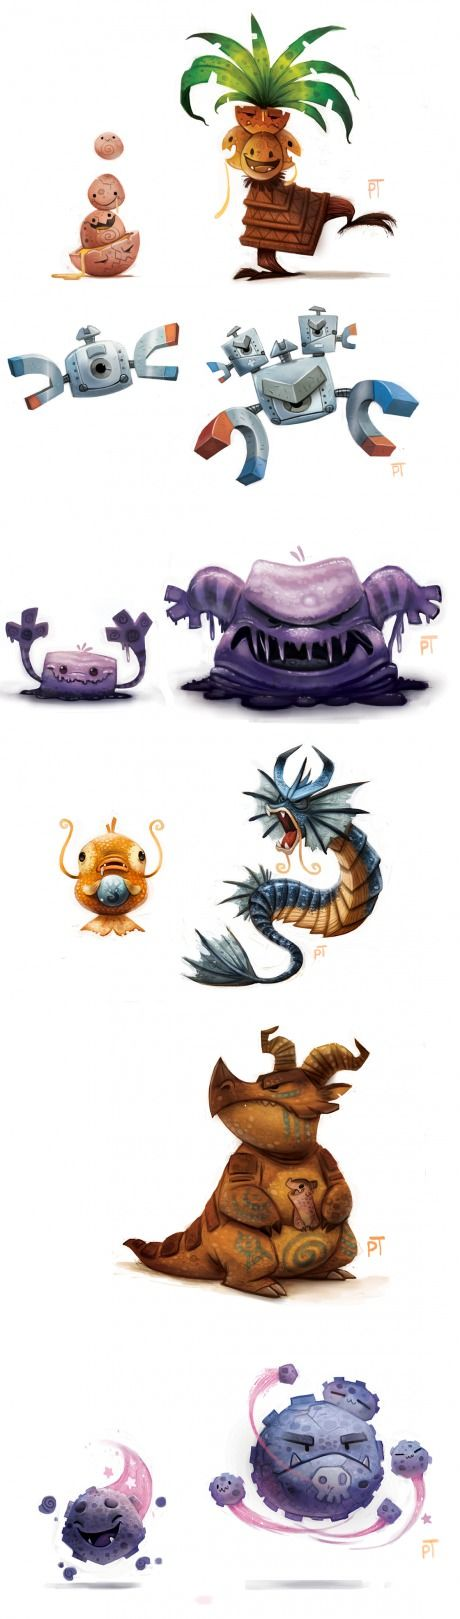 Imagine a pokemon game with this art style. The artist is called Cryptid-Creations on DA